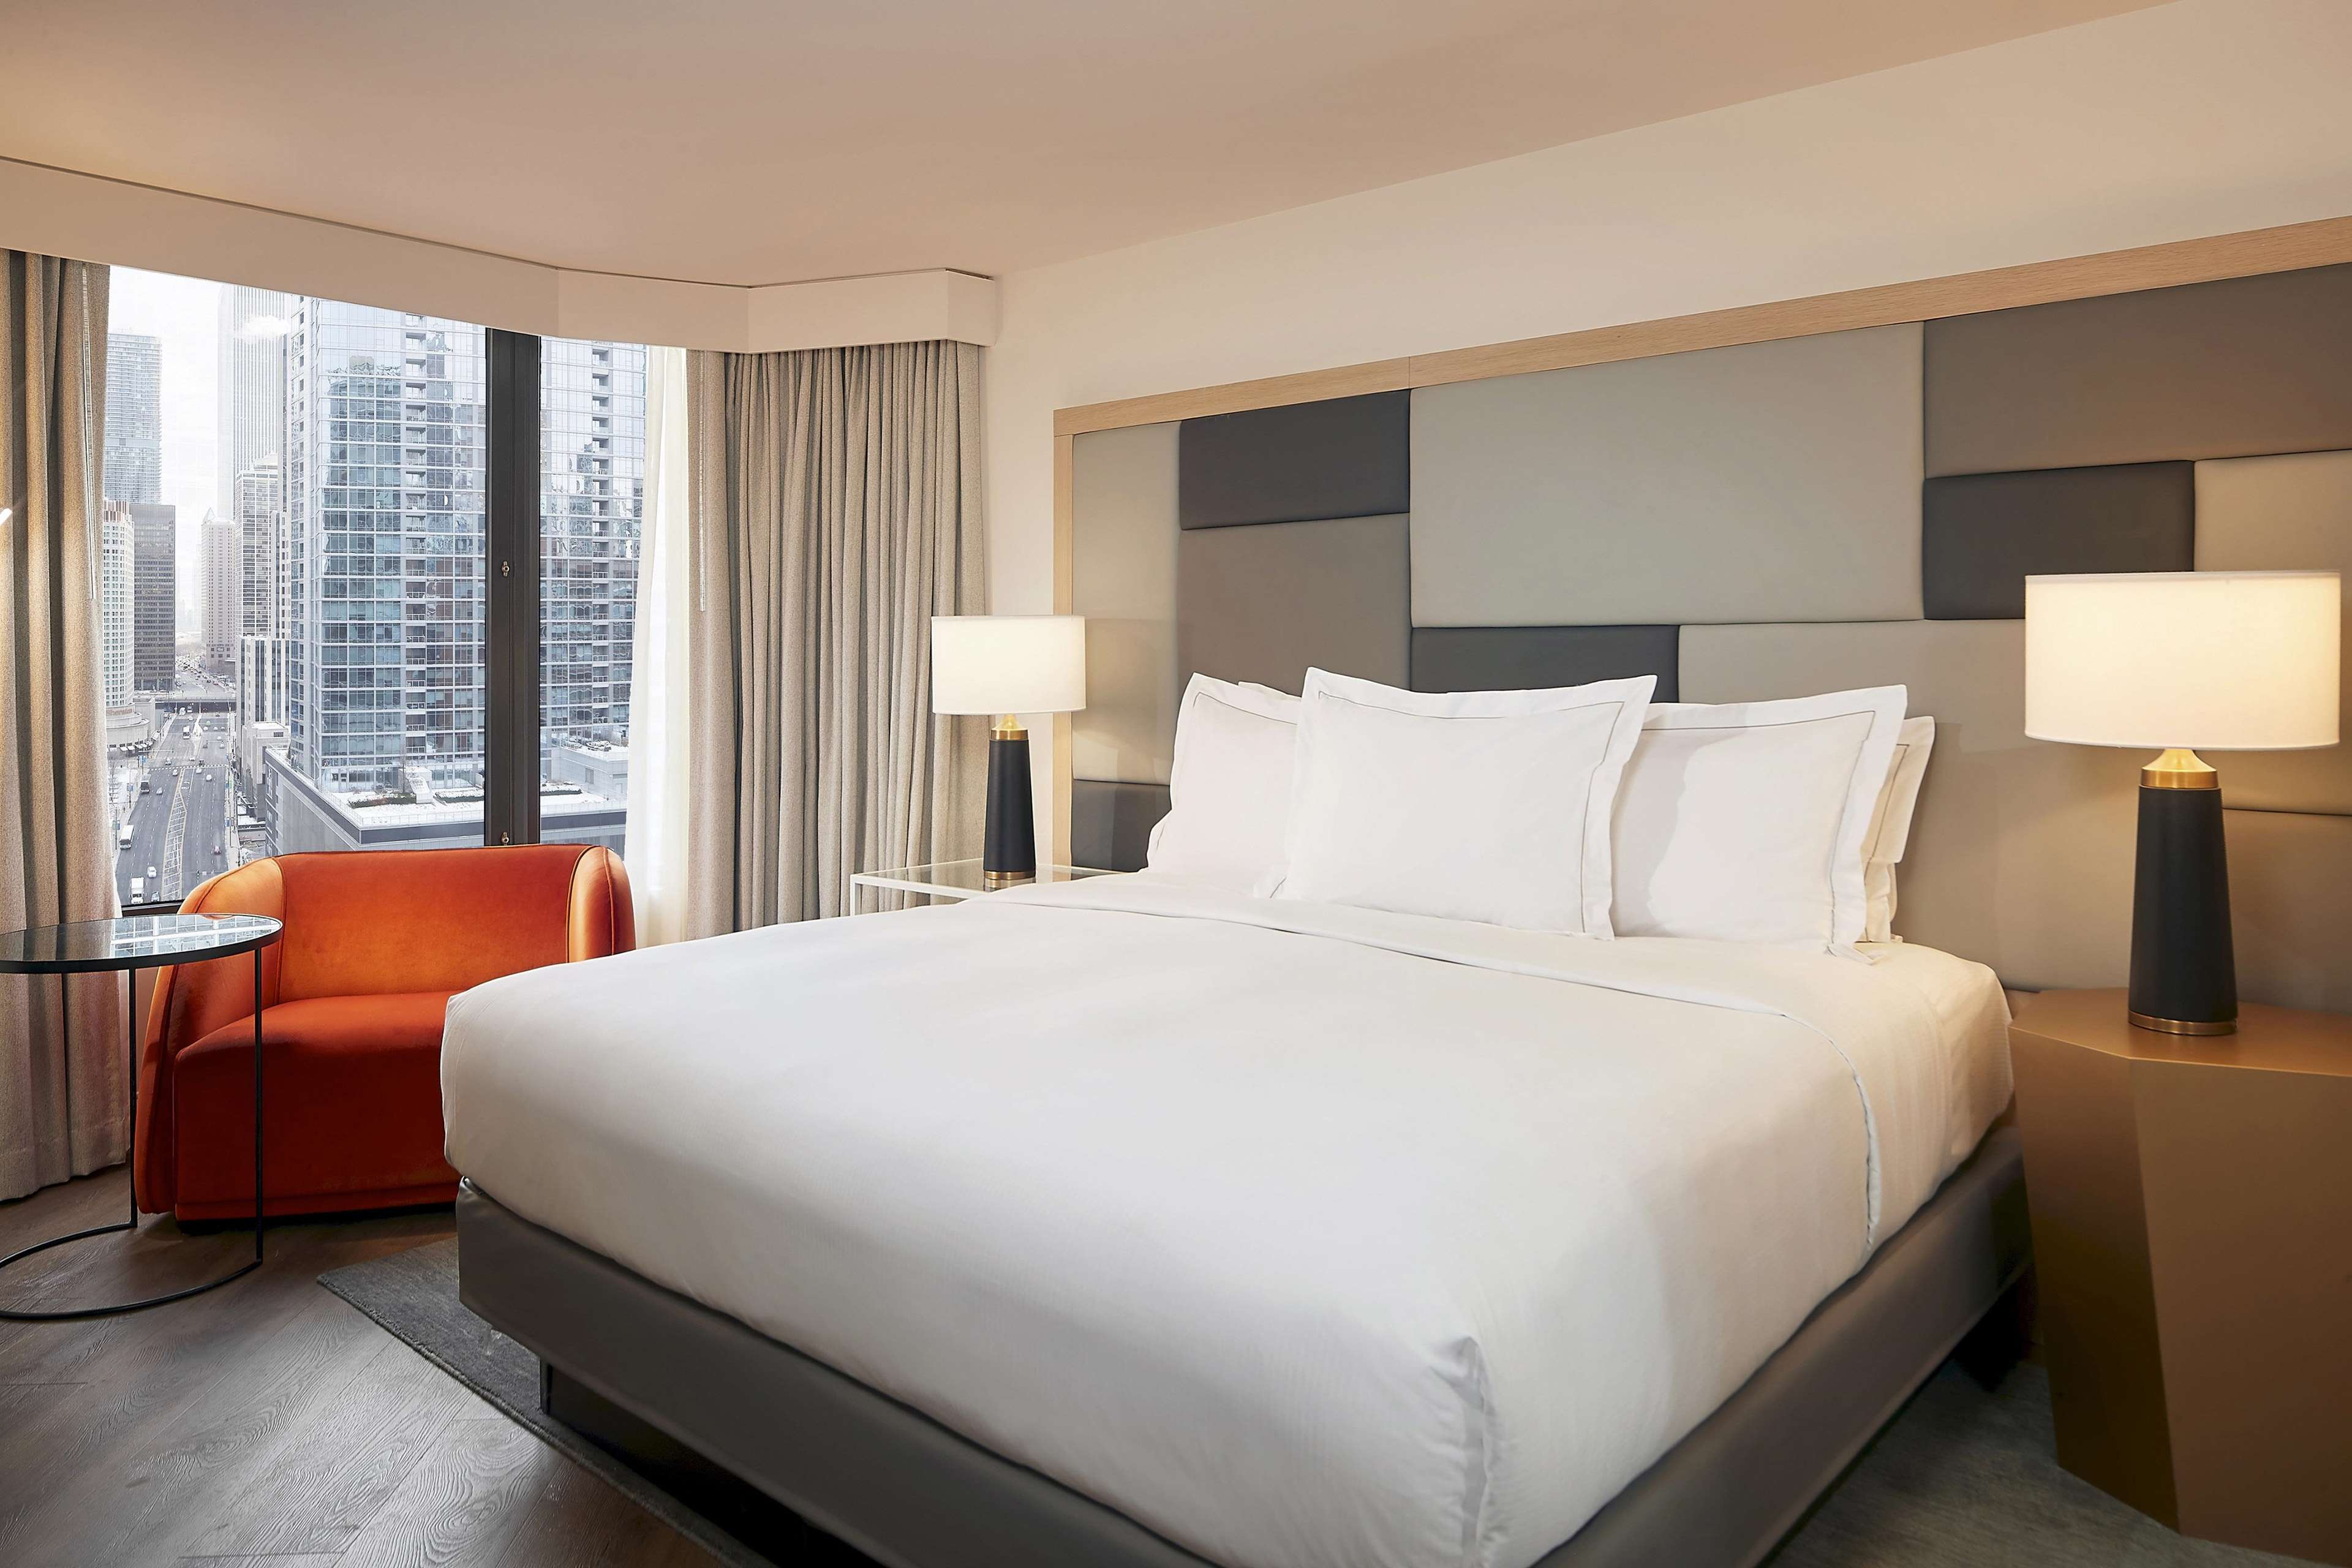 Hilton Grand Vacations Chicago Downtown Magnificent Mile image 9